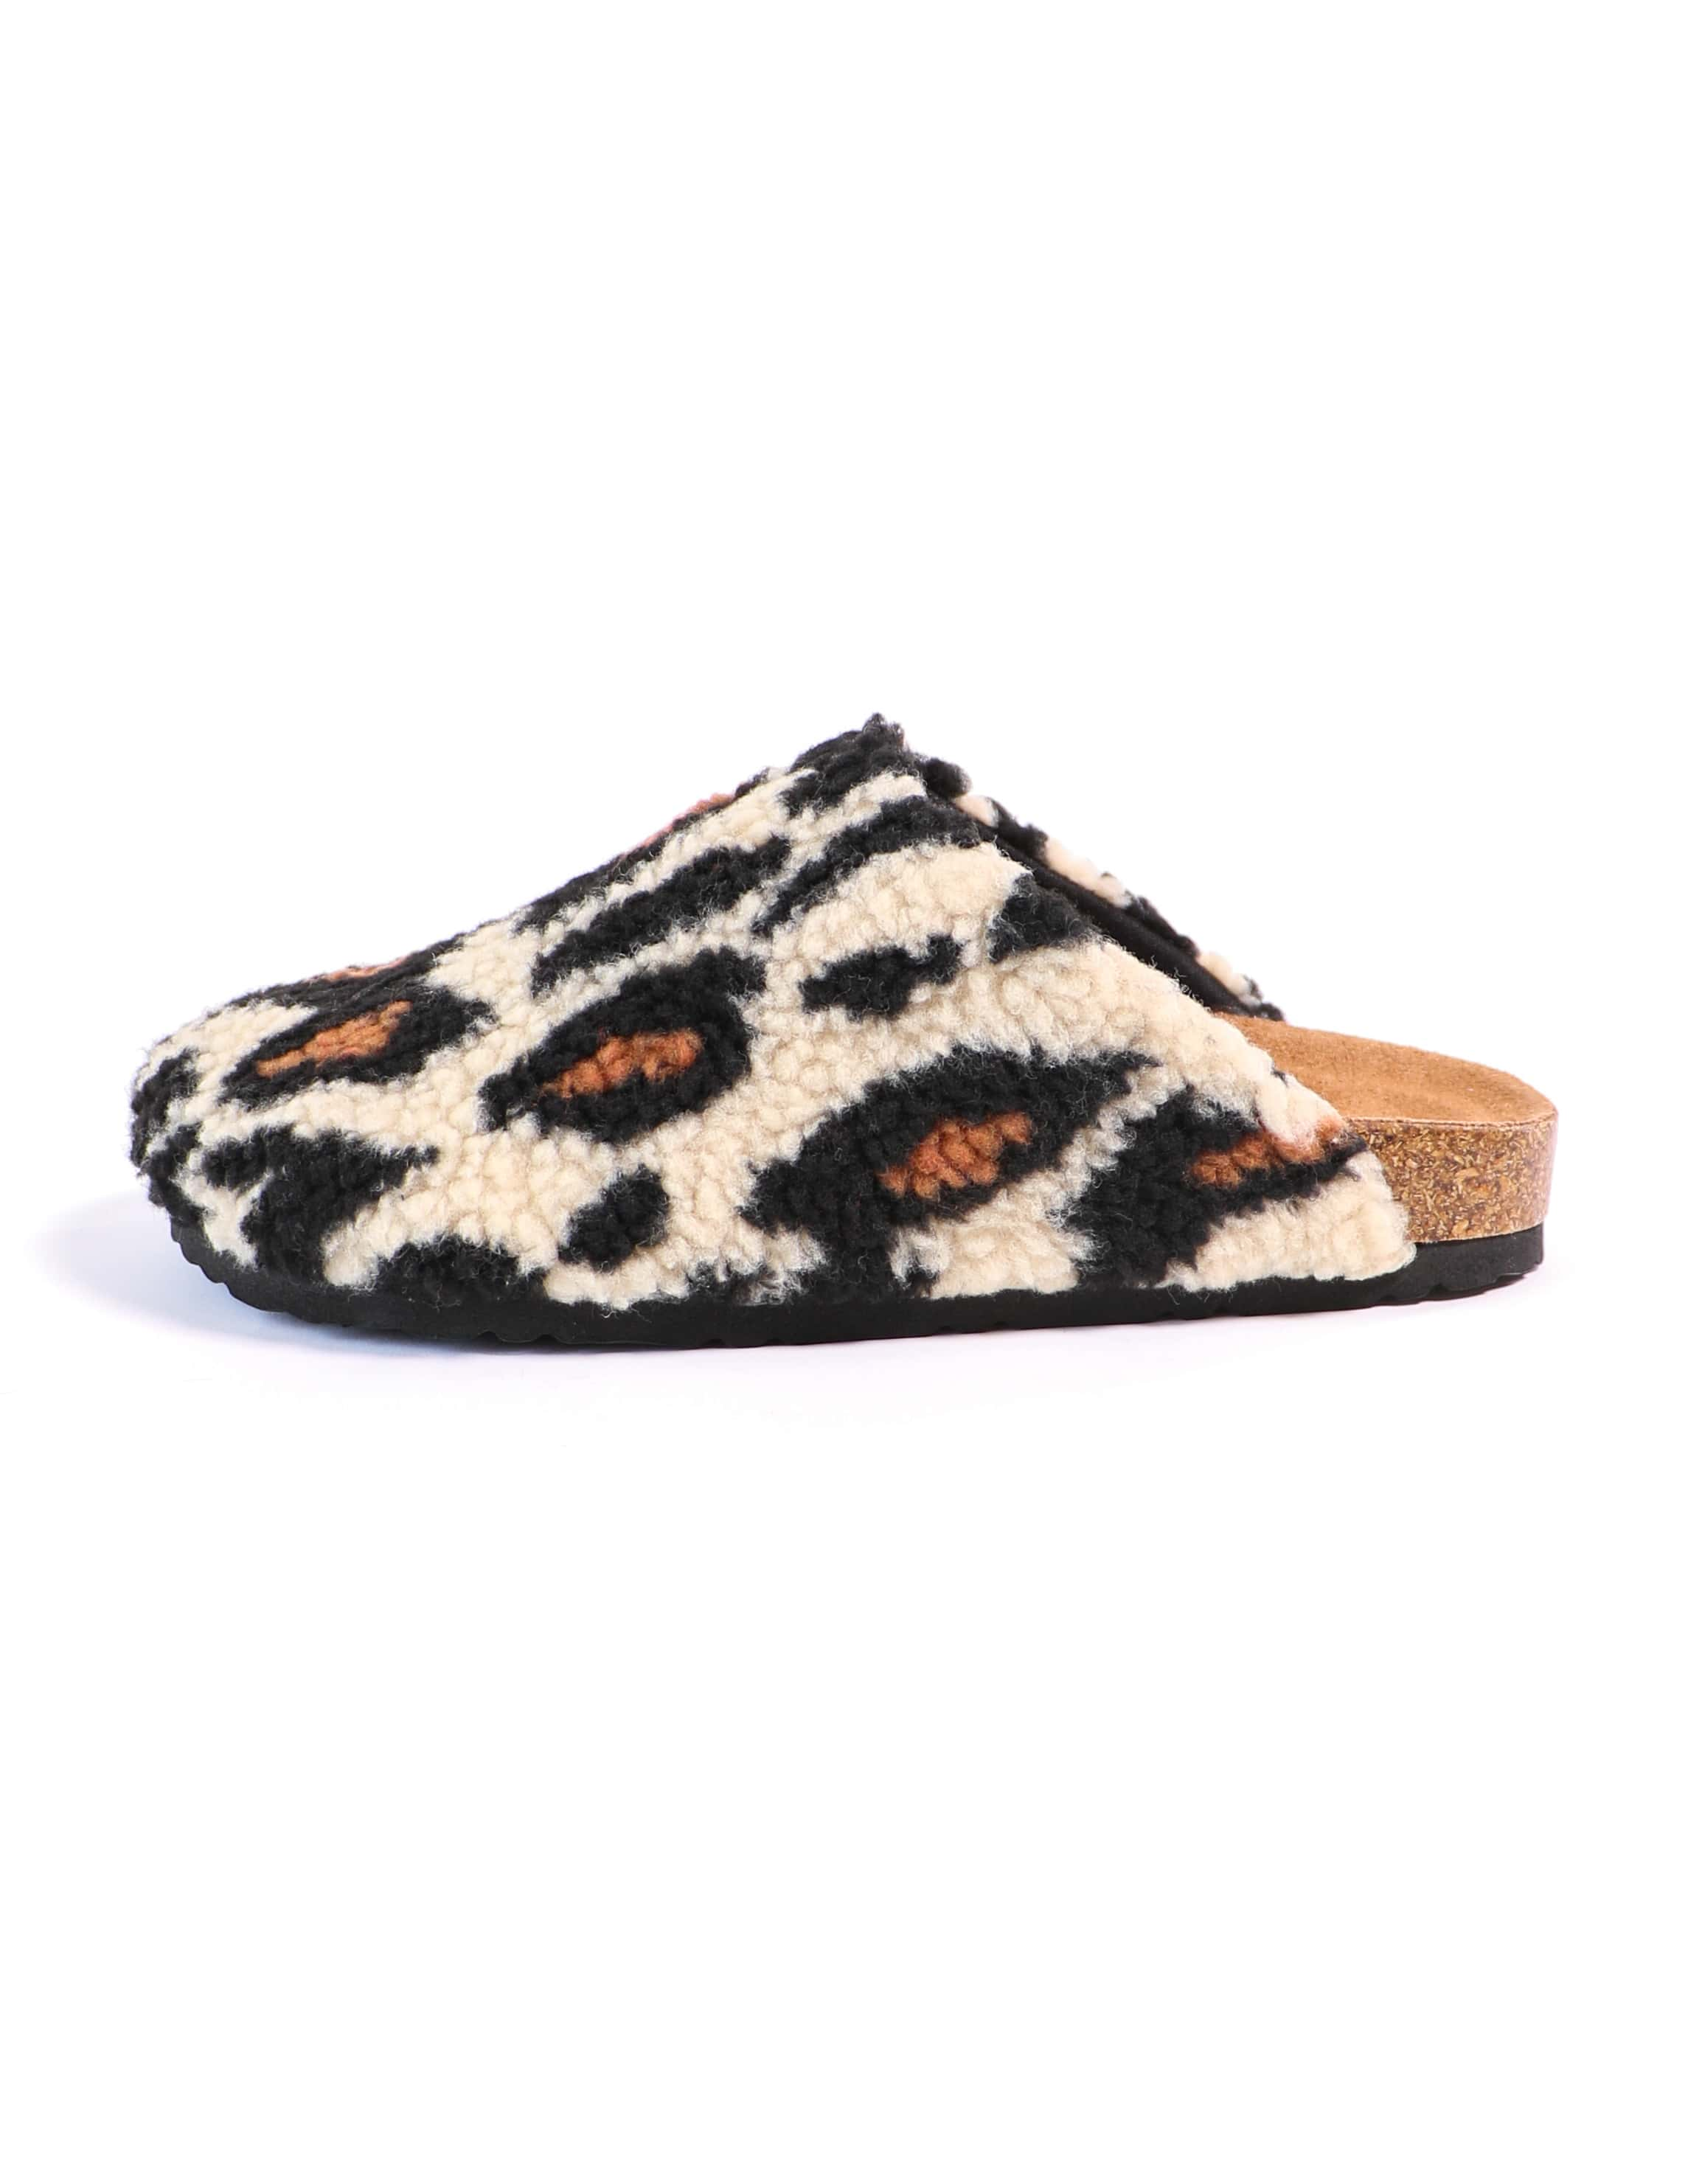 Leopard i'm teddy to go clog with shearling upper - elle bleu shoes